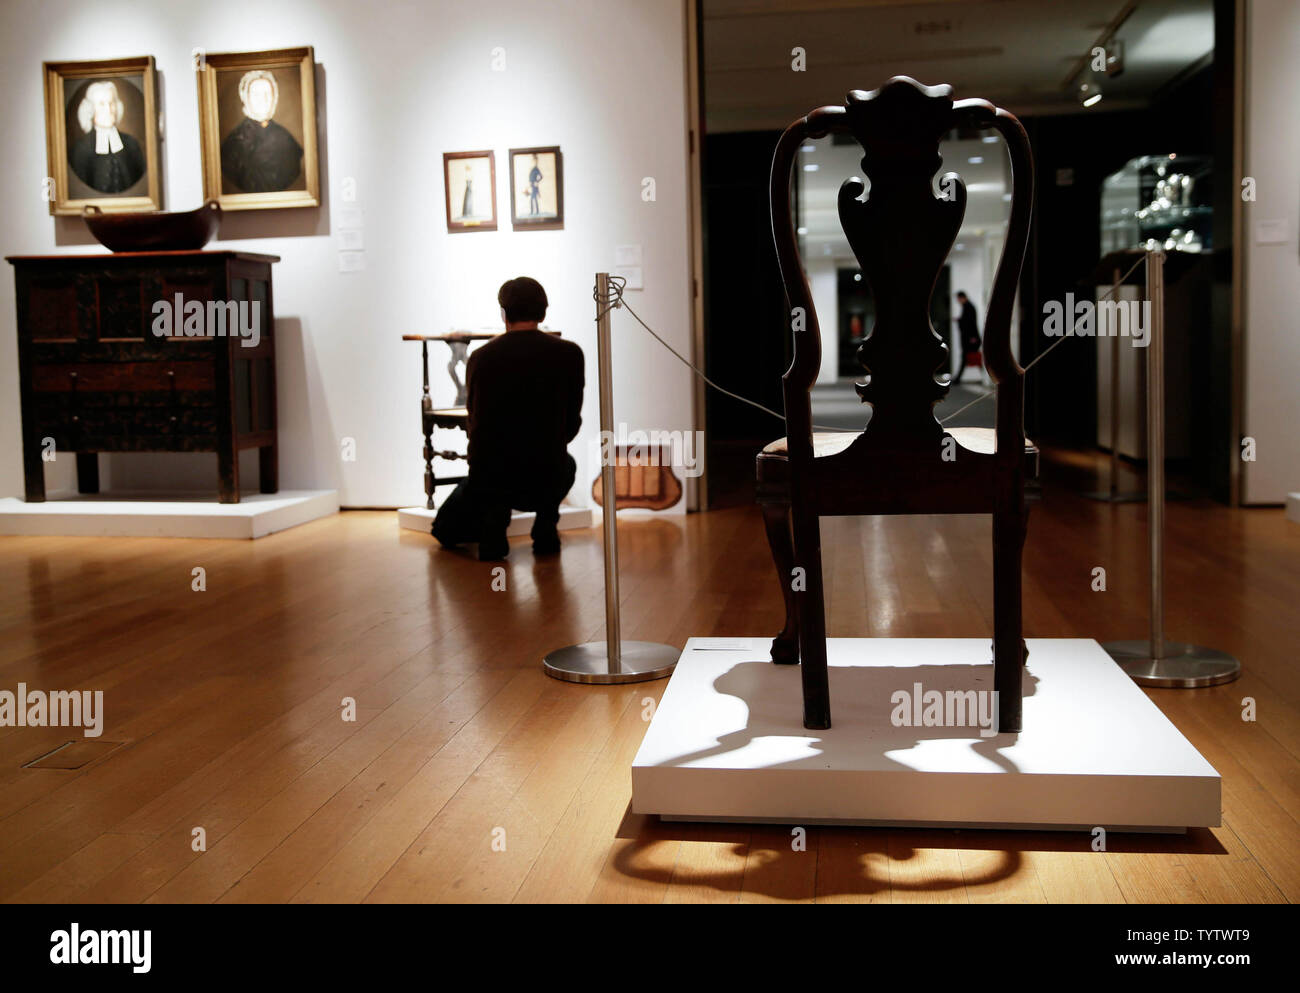 A Queen Anne Carved Walnut chair is on display at a press preview of an upcoming auction titled 'Important American Furniture, Folk Art, Silver and Prints' at Christie's in New York City on January 12, 2019. The auction features Ammi Phillips' 'Girl in a Red Dress with a Dog', and Edward Hicks' 'Peaceable Kingdom, both estd $800,000 - $1.2 million. The auction takes place on January 17th and 18th.     Photo by John Angelillo/UPI - Stock Image